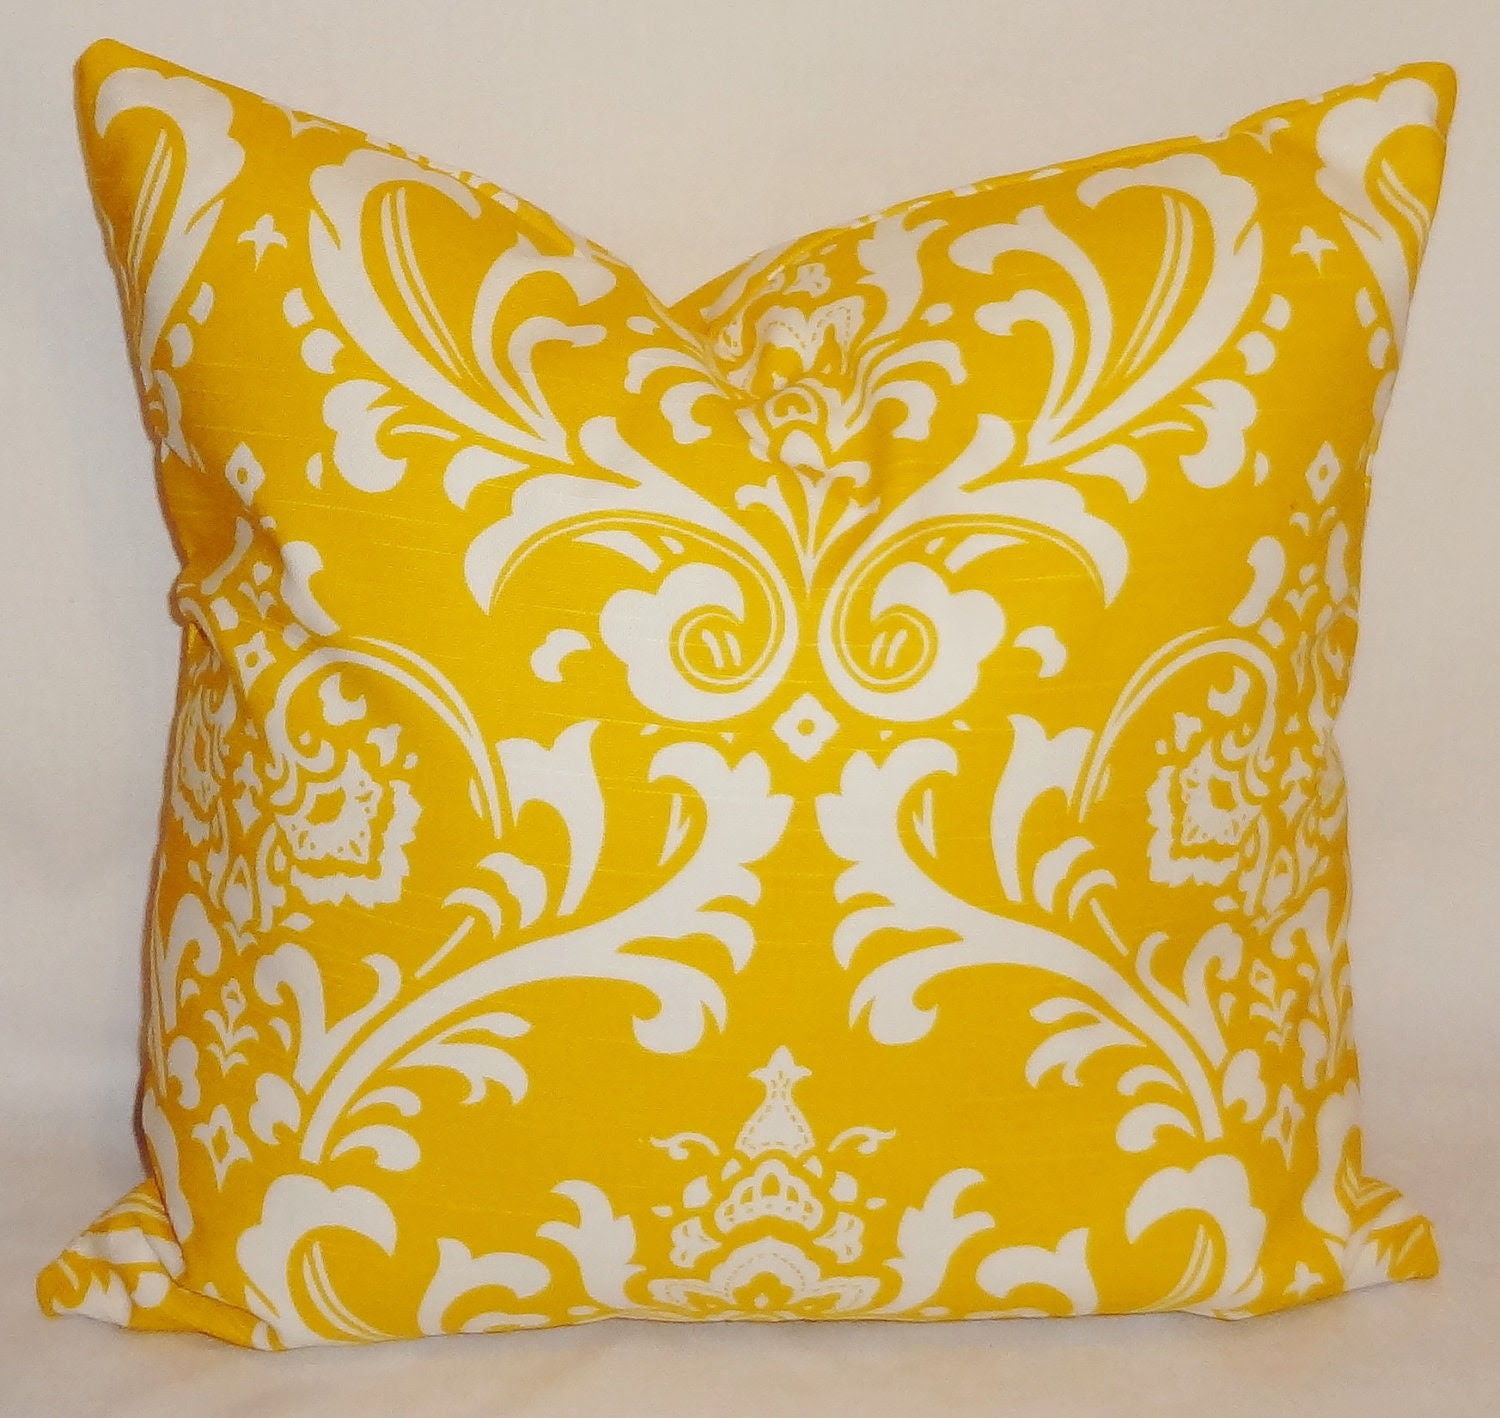 Decorative Pillows Corn Yellow/White Damask Pillow by HomeLiving